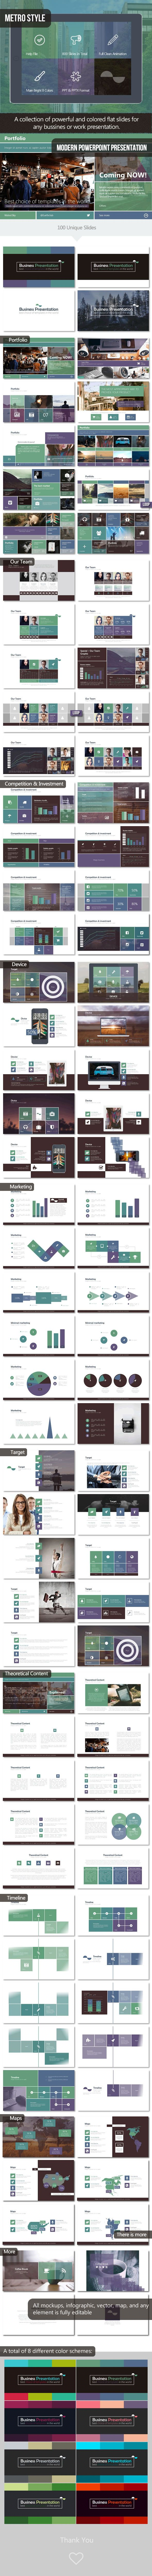 The 25 best business ppt ideas on pinterest business powerpoint business ppt metro style template design slides download http toneelgroepblik Image collections